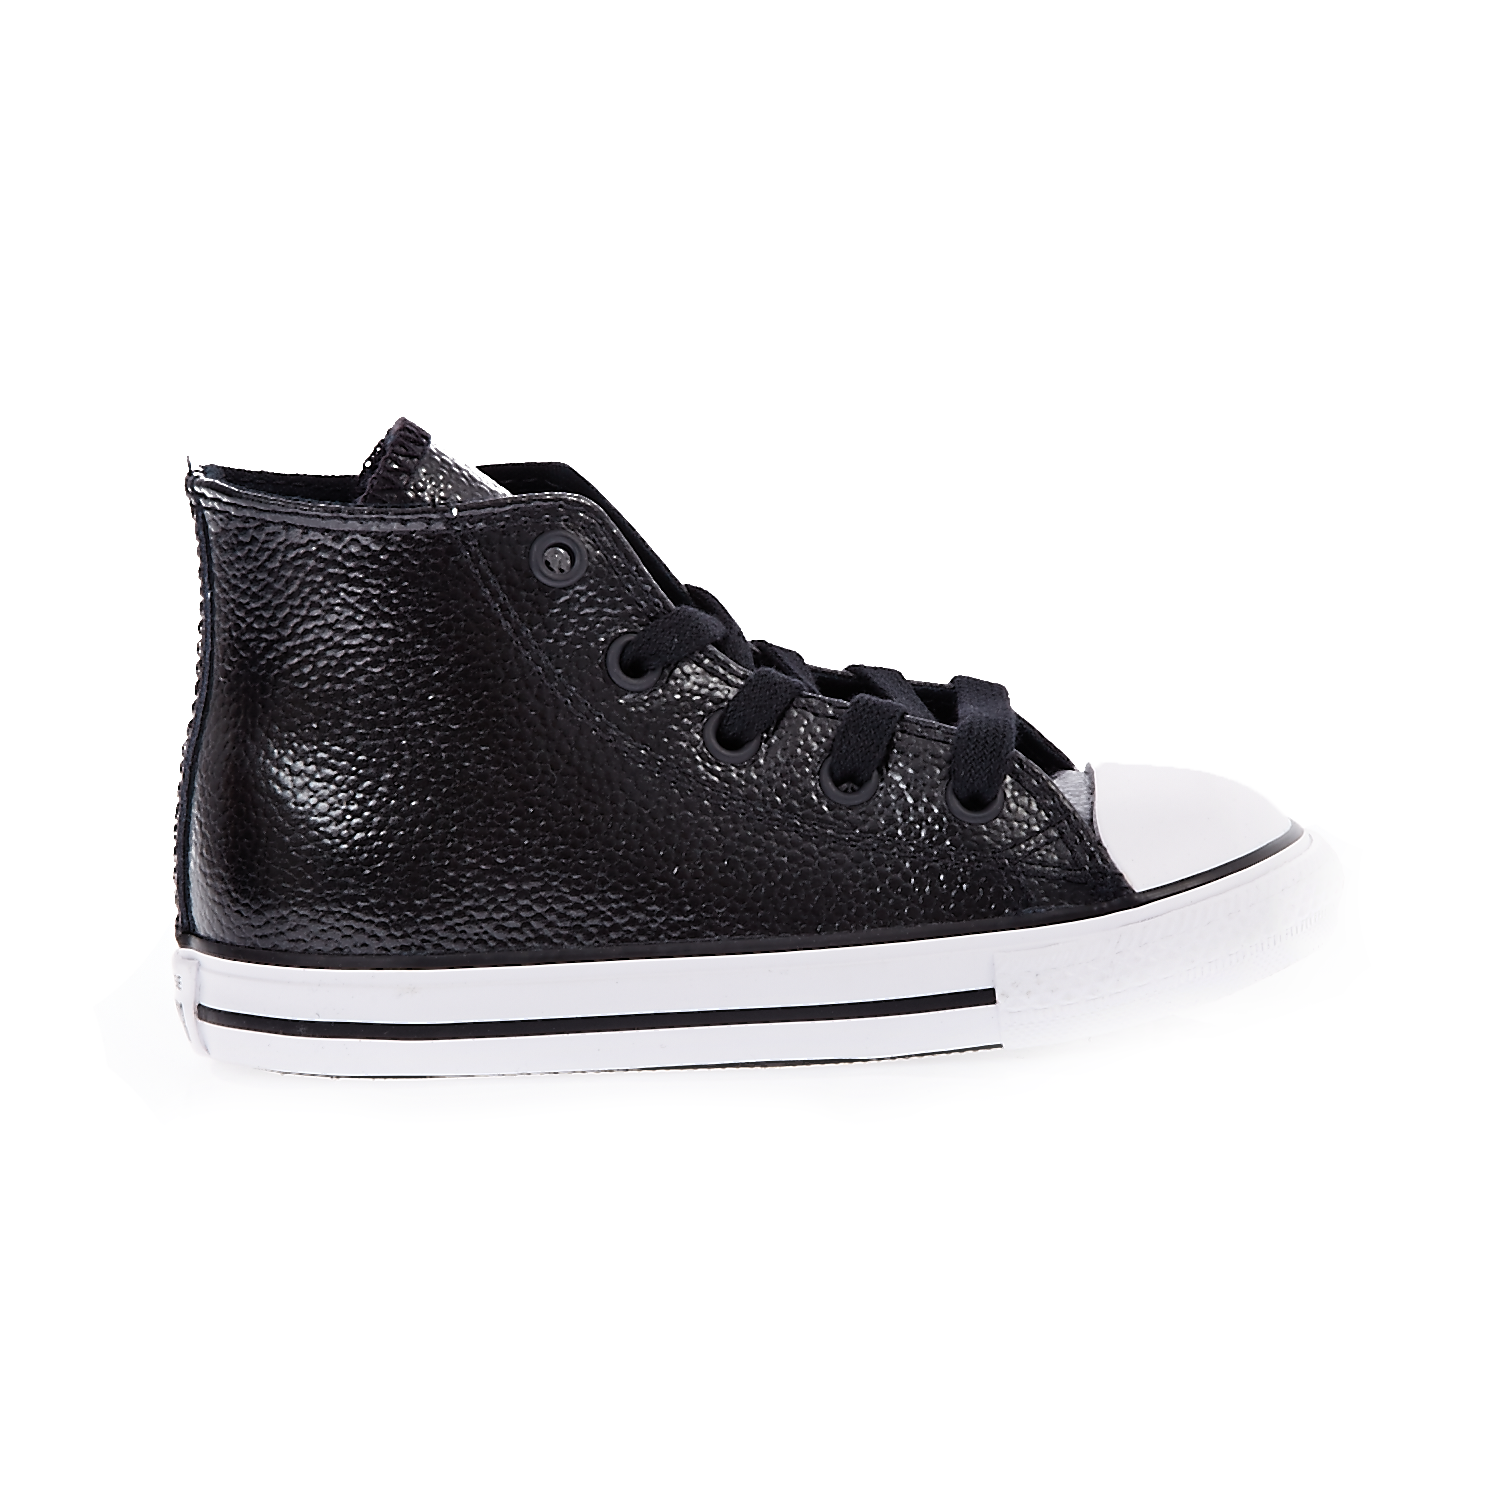 CONVERSE – Βρεφικά παπούτσια Chuck Taylor All Star Hi μαύρα